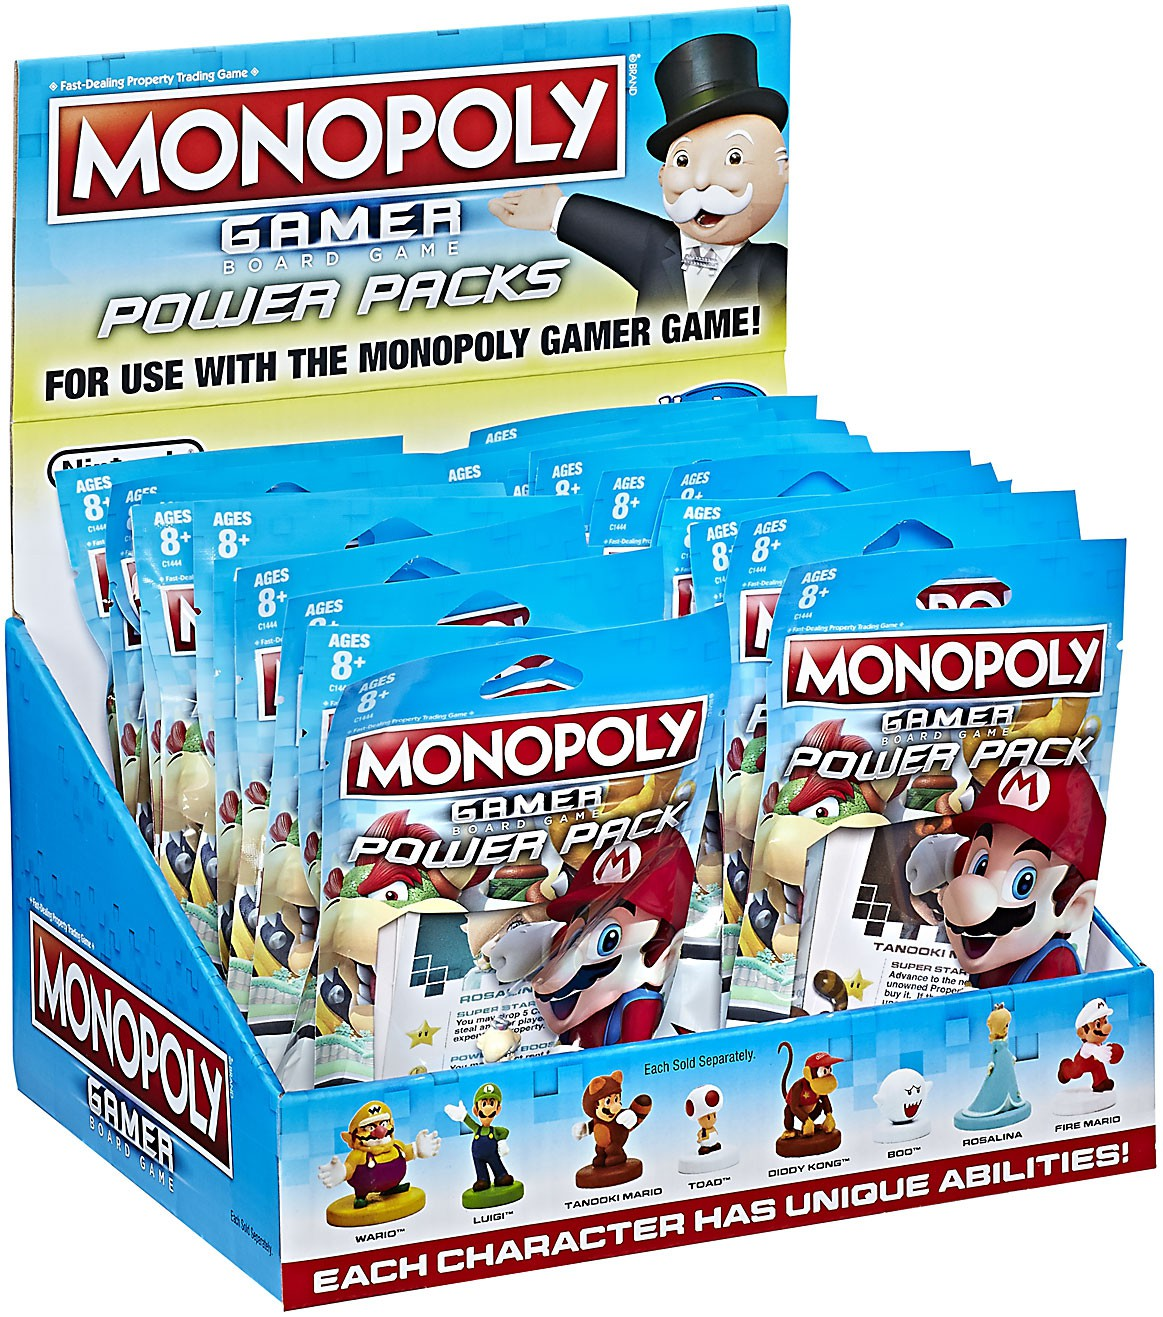 Monopoly Gamer Edition Power Mystery Box [24 Packs] by